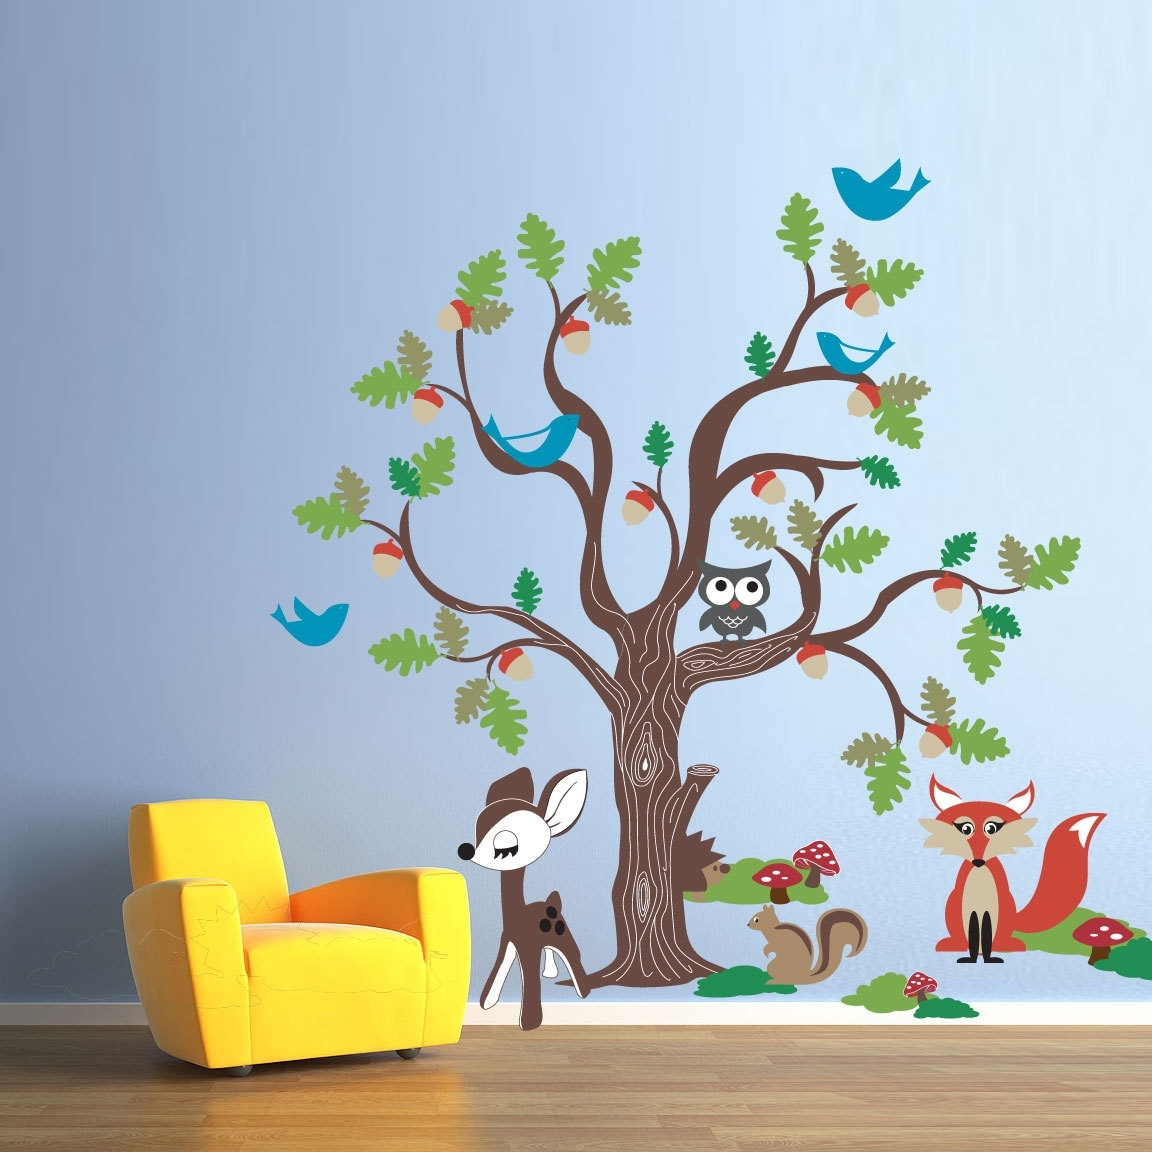 Recent Vinyl Wall Decal Sticker Art – Oak Tree And Woodland Animals Pertaining To Oak Tree Vinyl Wall Art (View 12 of 15)